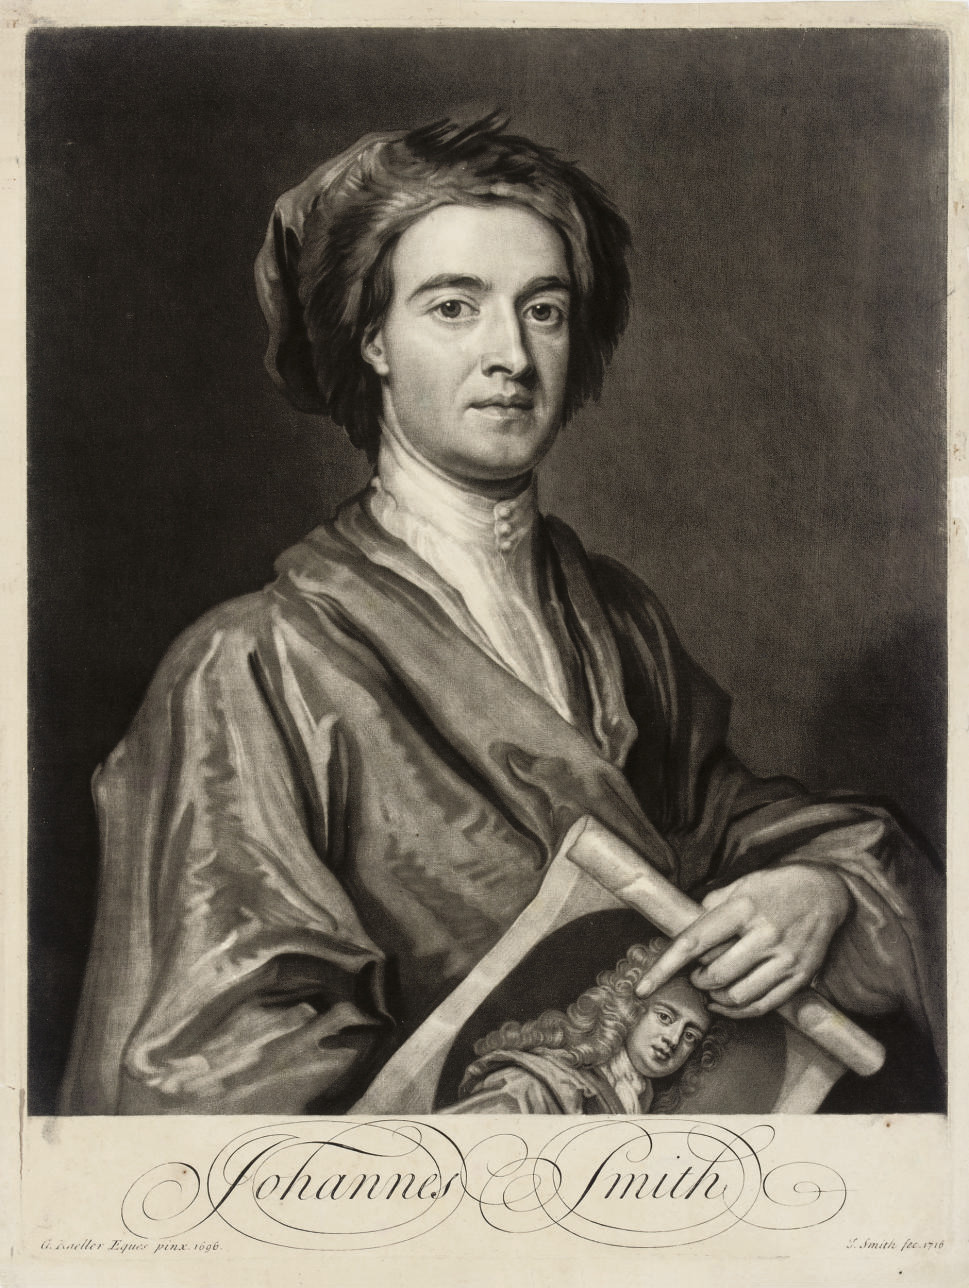 John Smith (1652-1742) after G